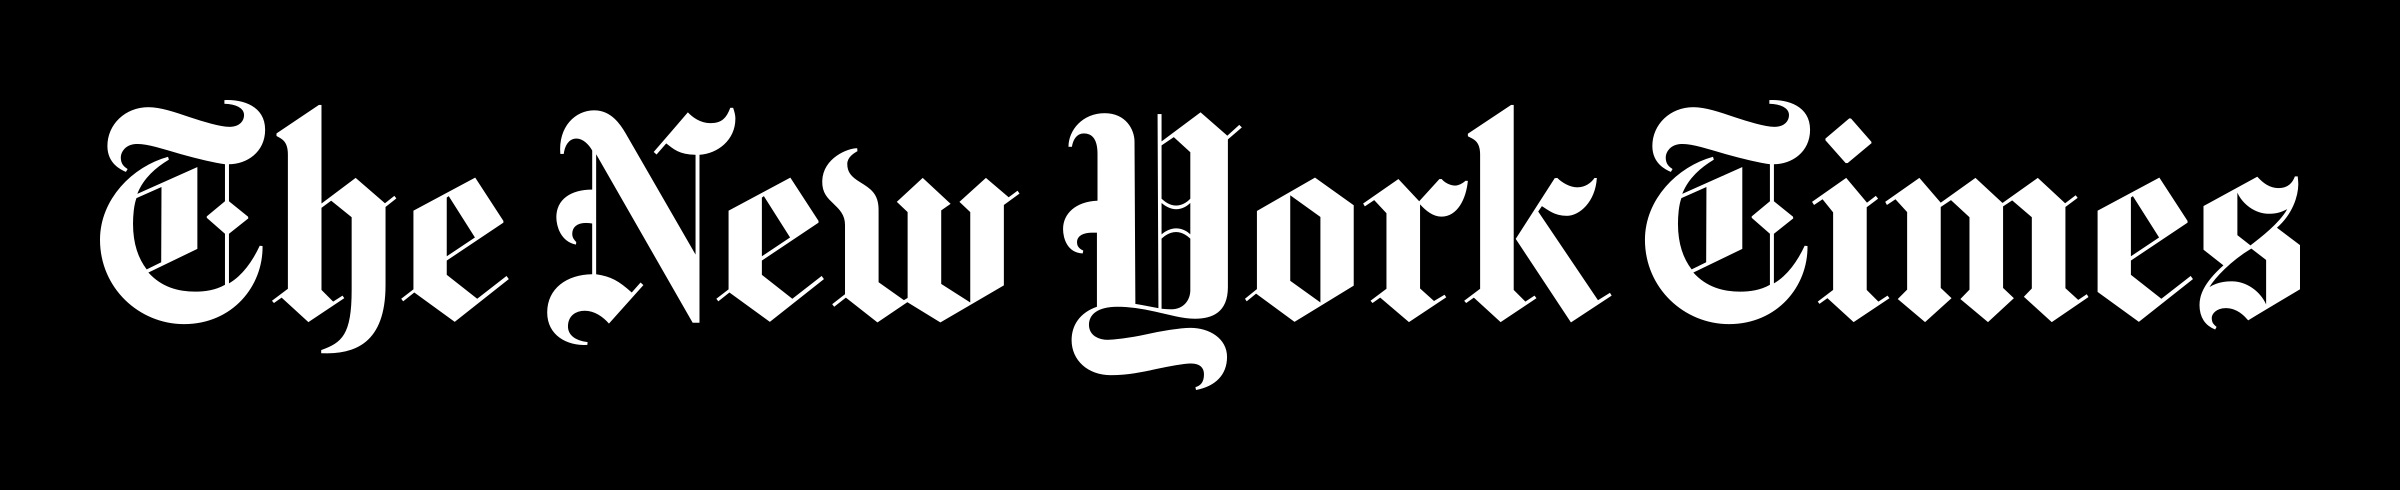 new-york-times-logo-black-and-white.jpg